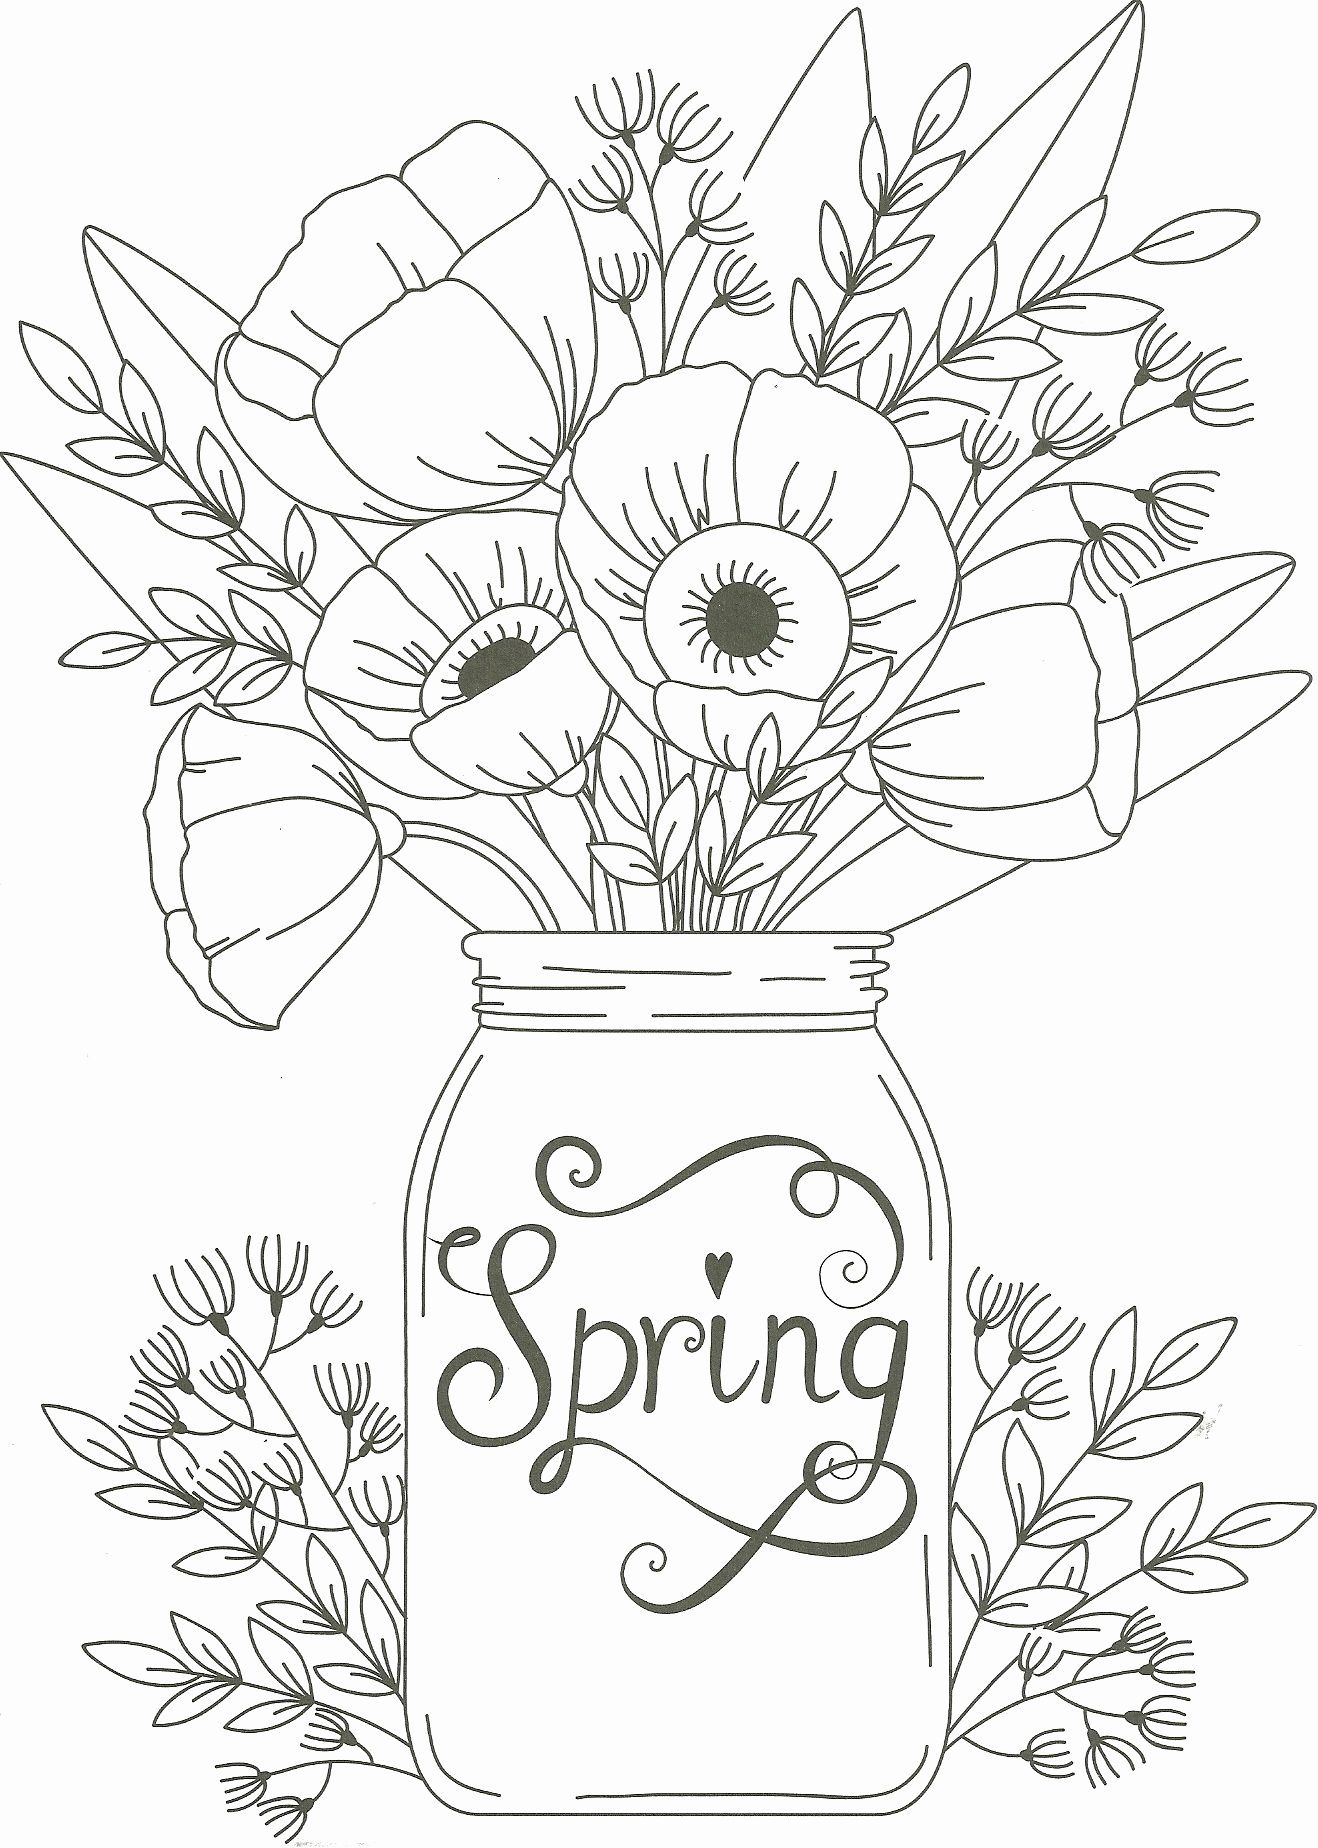 Flowers Coloring Page Free Flowers Online Coloring Spring Coloring Pages Cute Coloring Pages Flower Coloring Pages